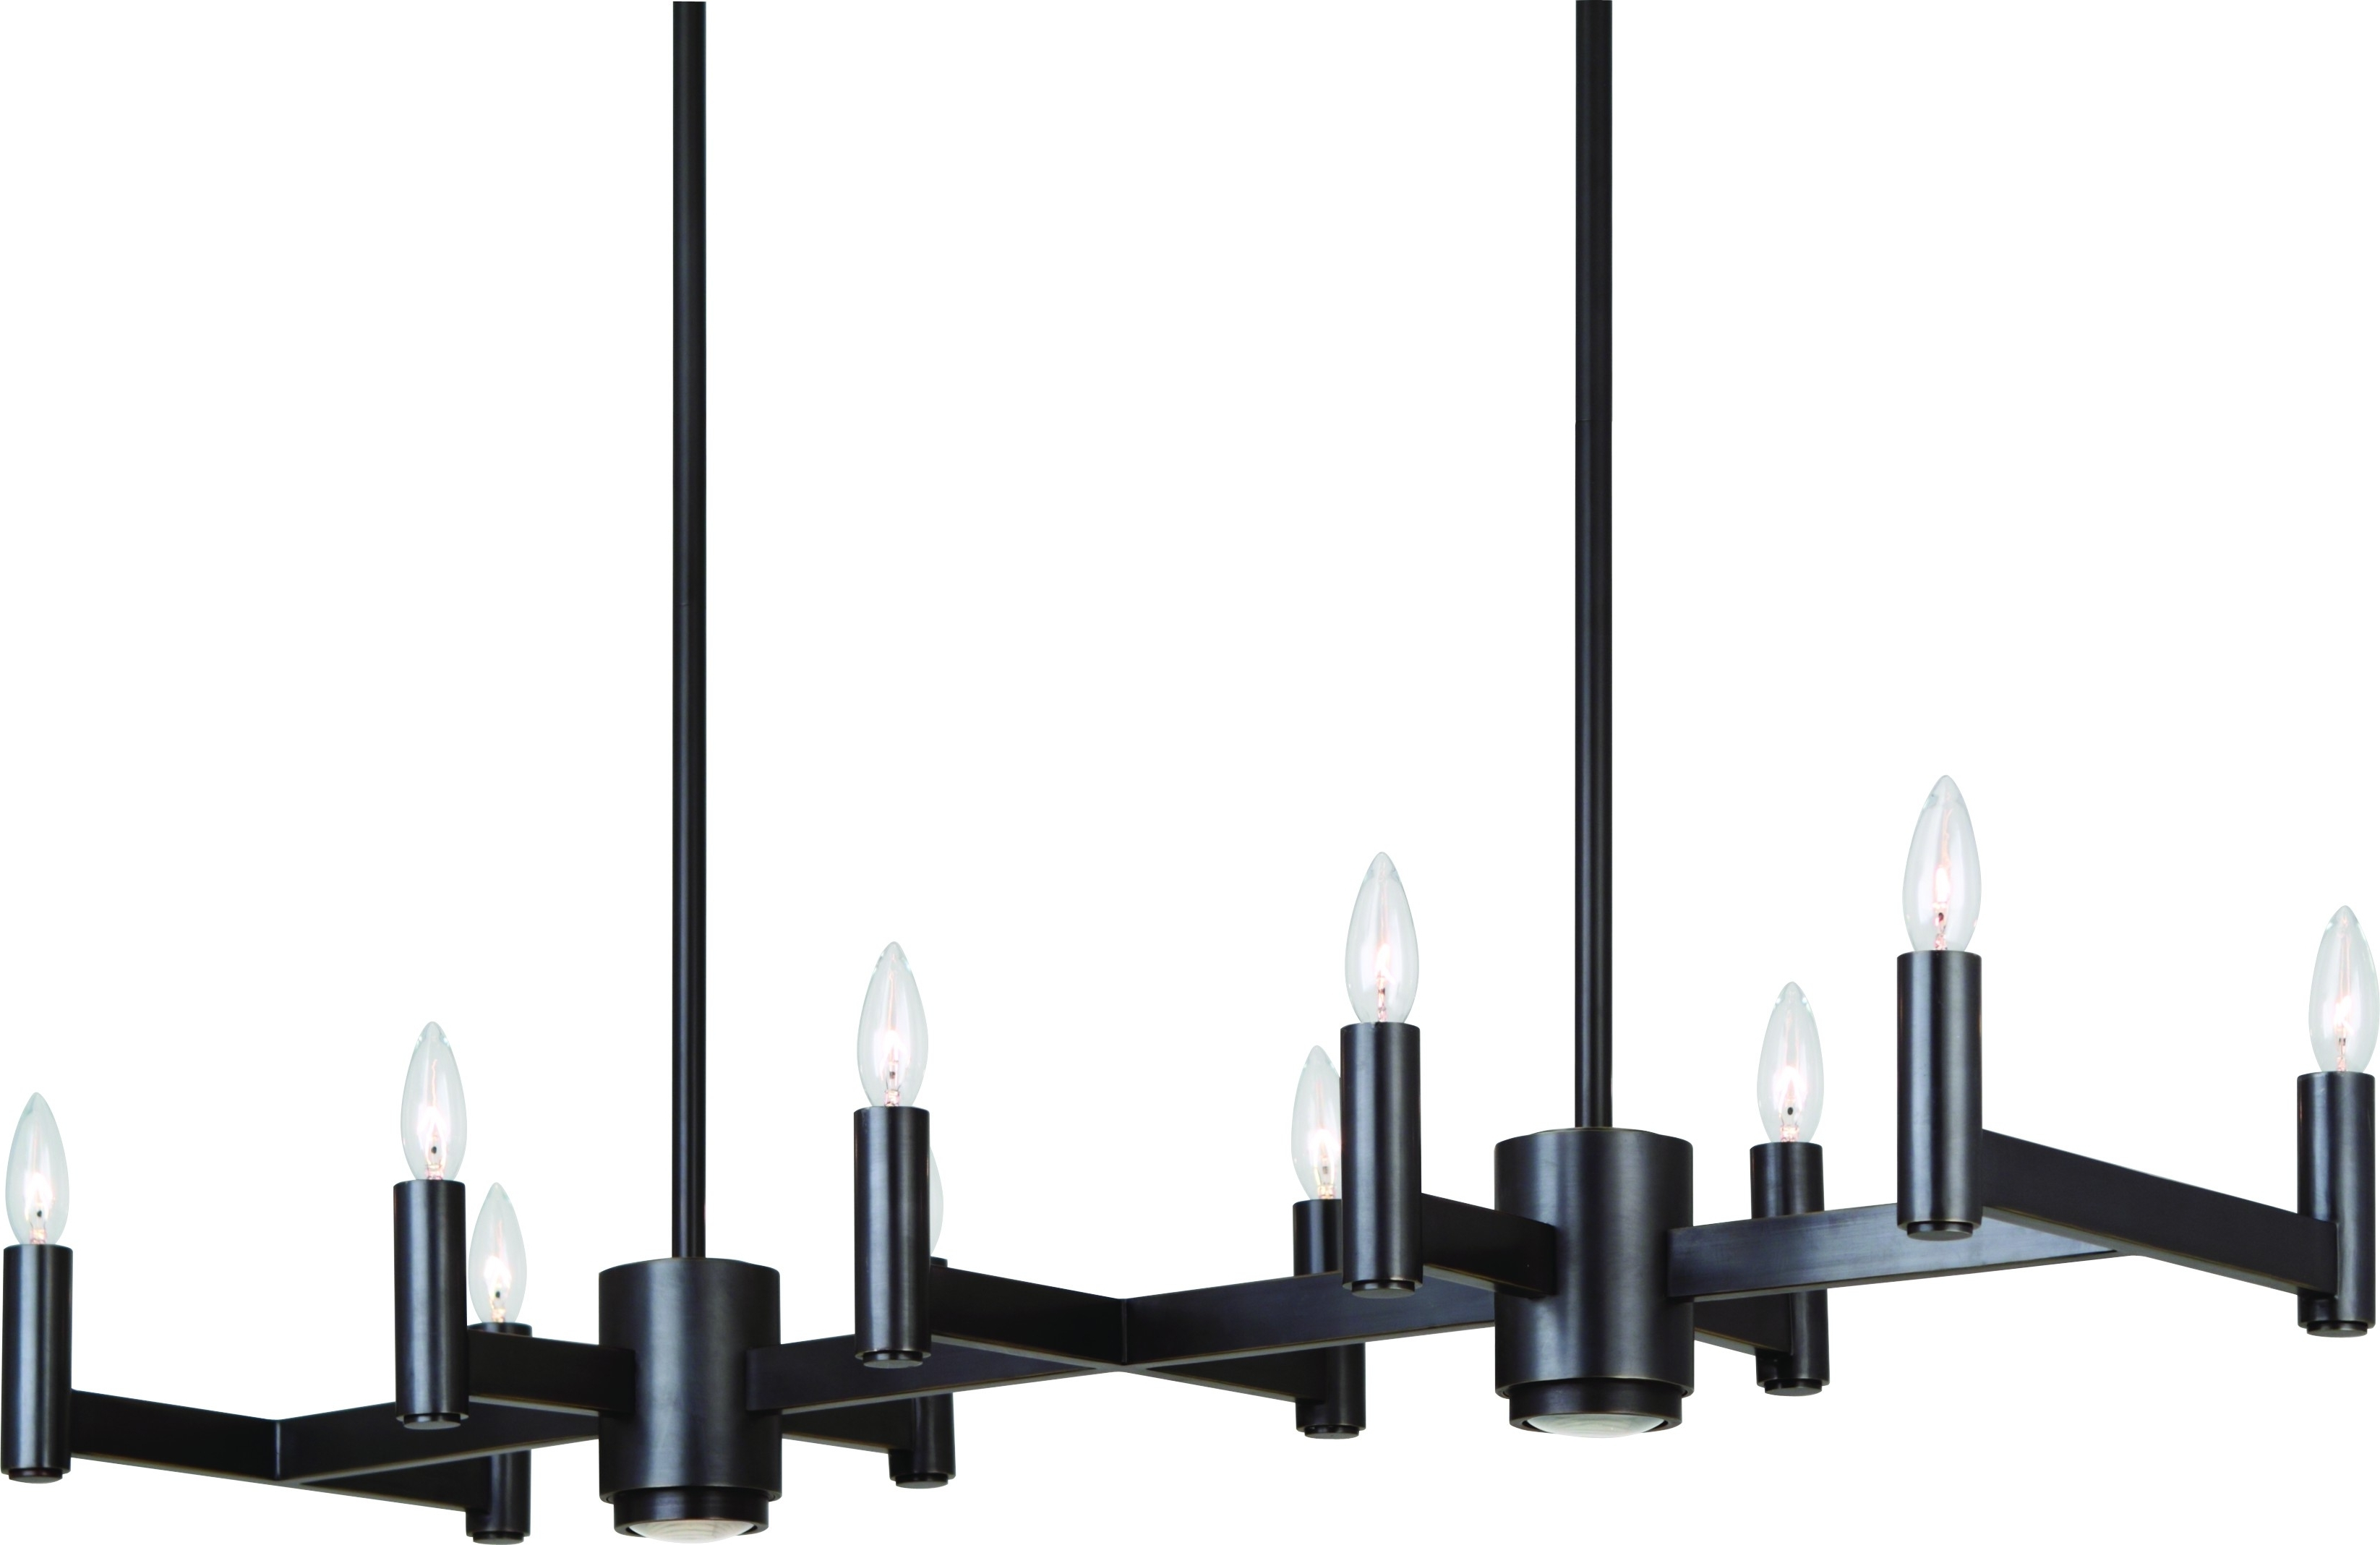 Black Contemporary Chandelier In Latest Home Design : Good Looking Black Modern Chandelier Brilliant Design (View 6 of 20)